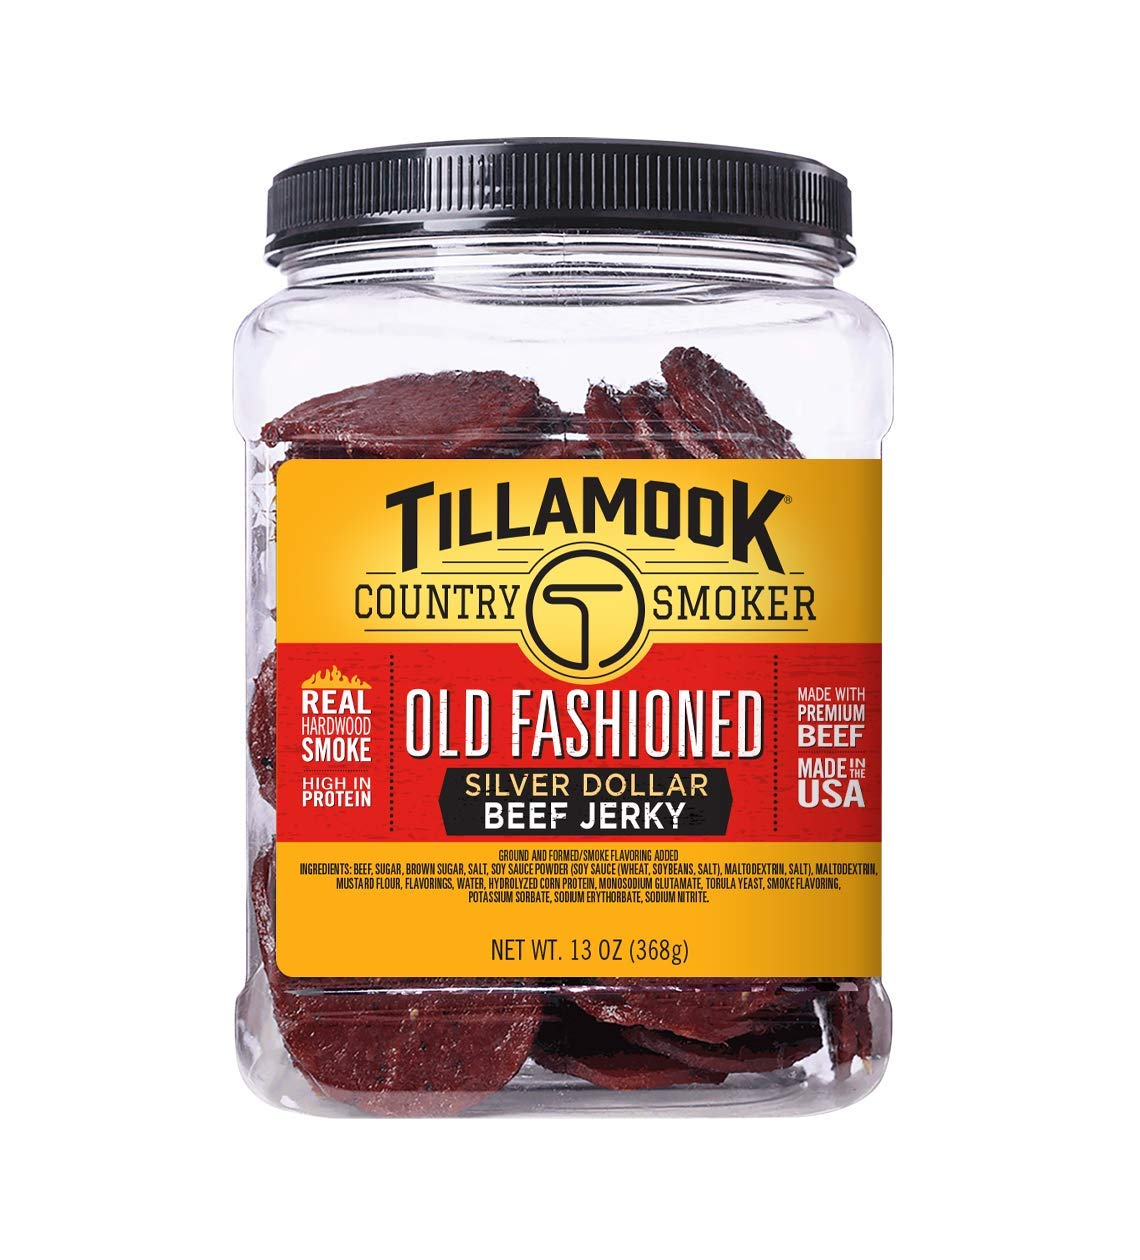 Tillamook Country Smoker Real Hardwood Smoked Silver Dollar Beef Jerky, Old Fashioned, 13 Ounce